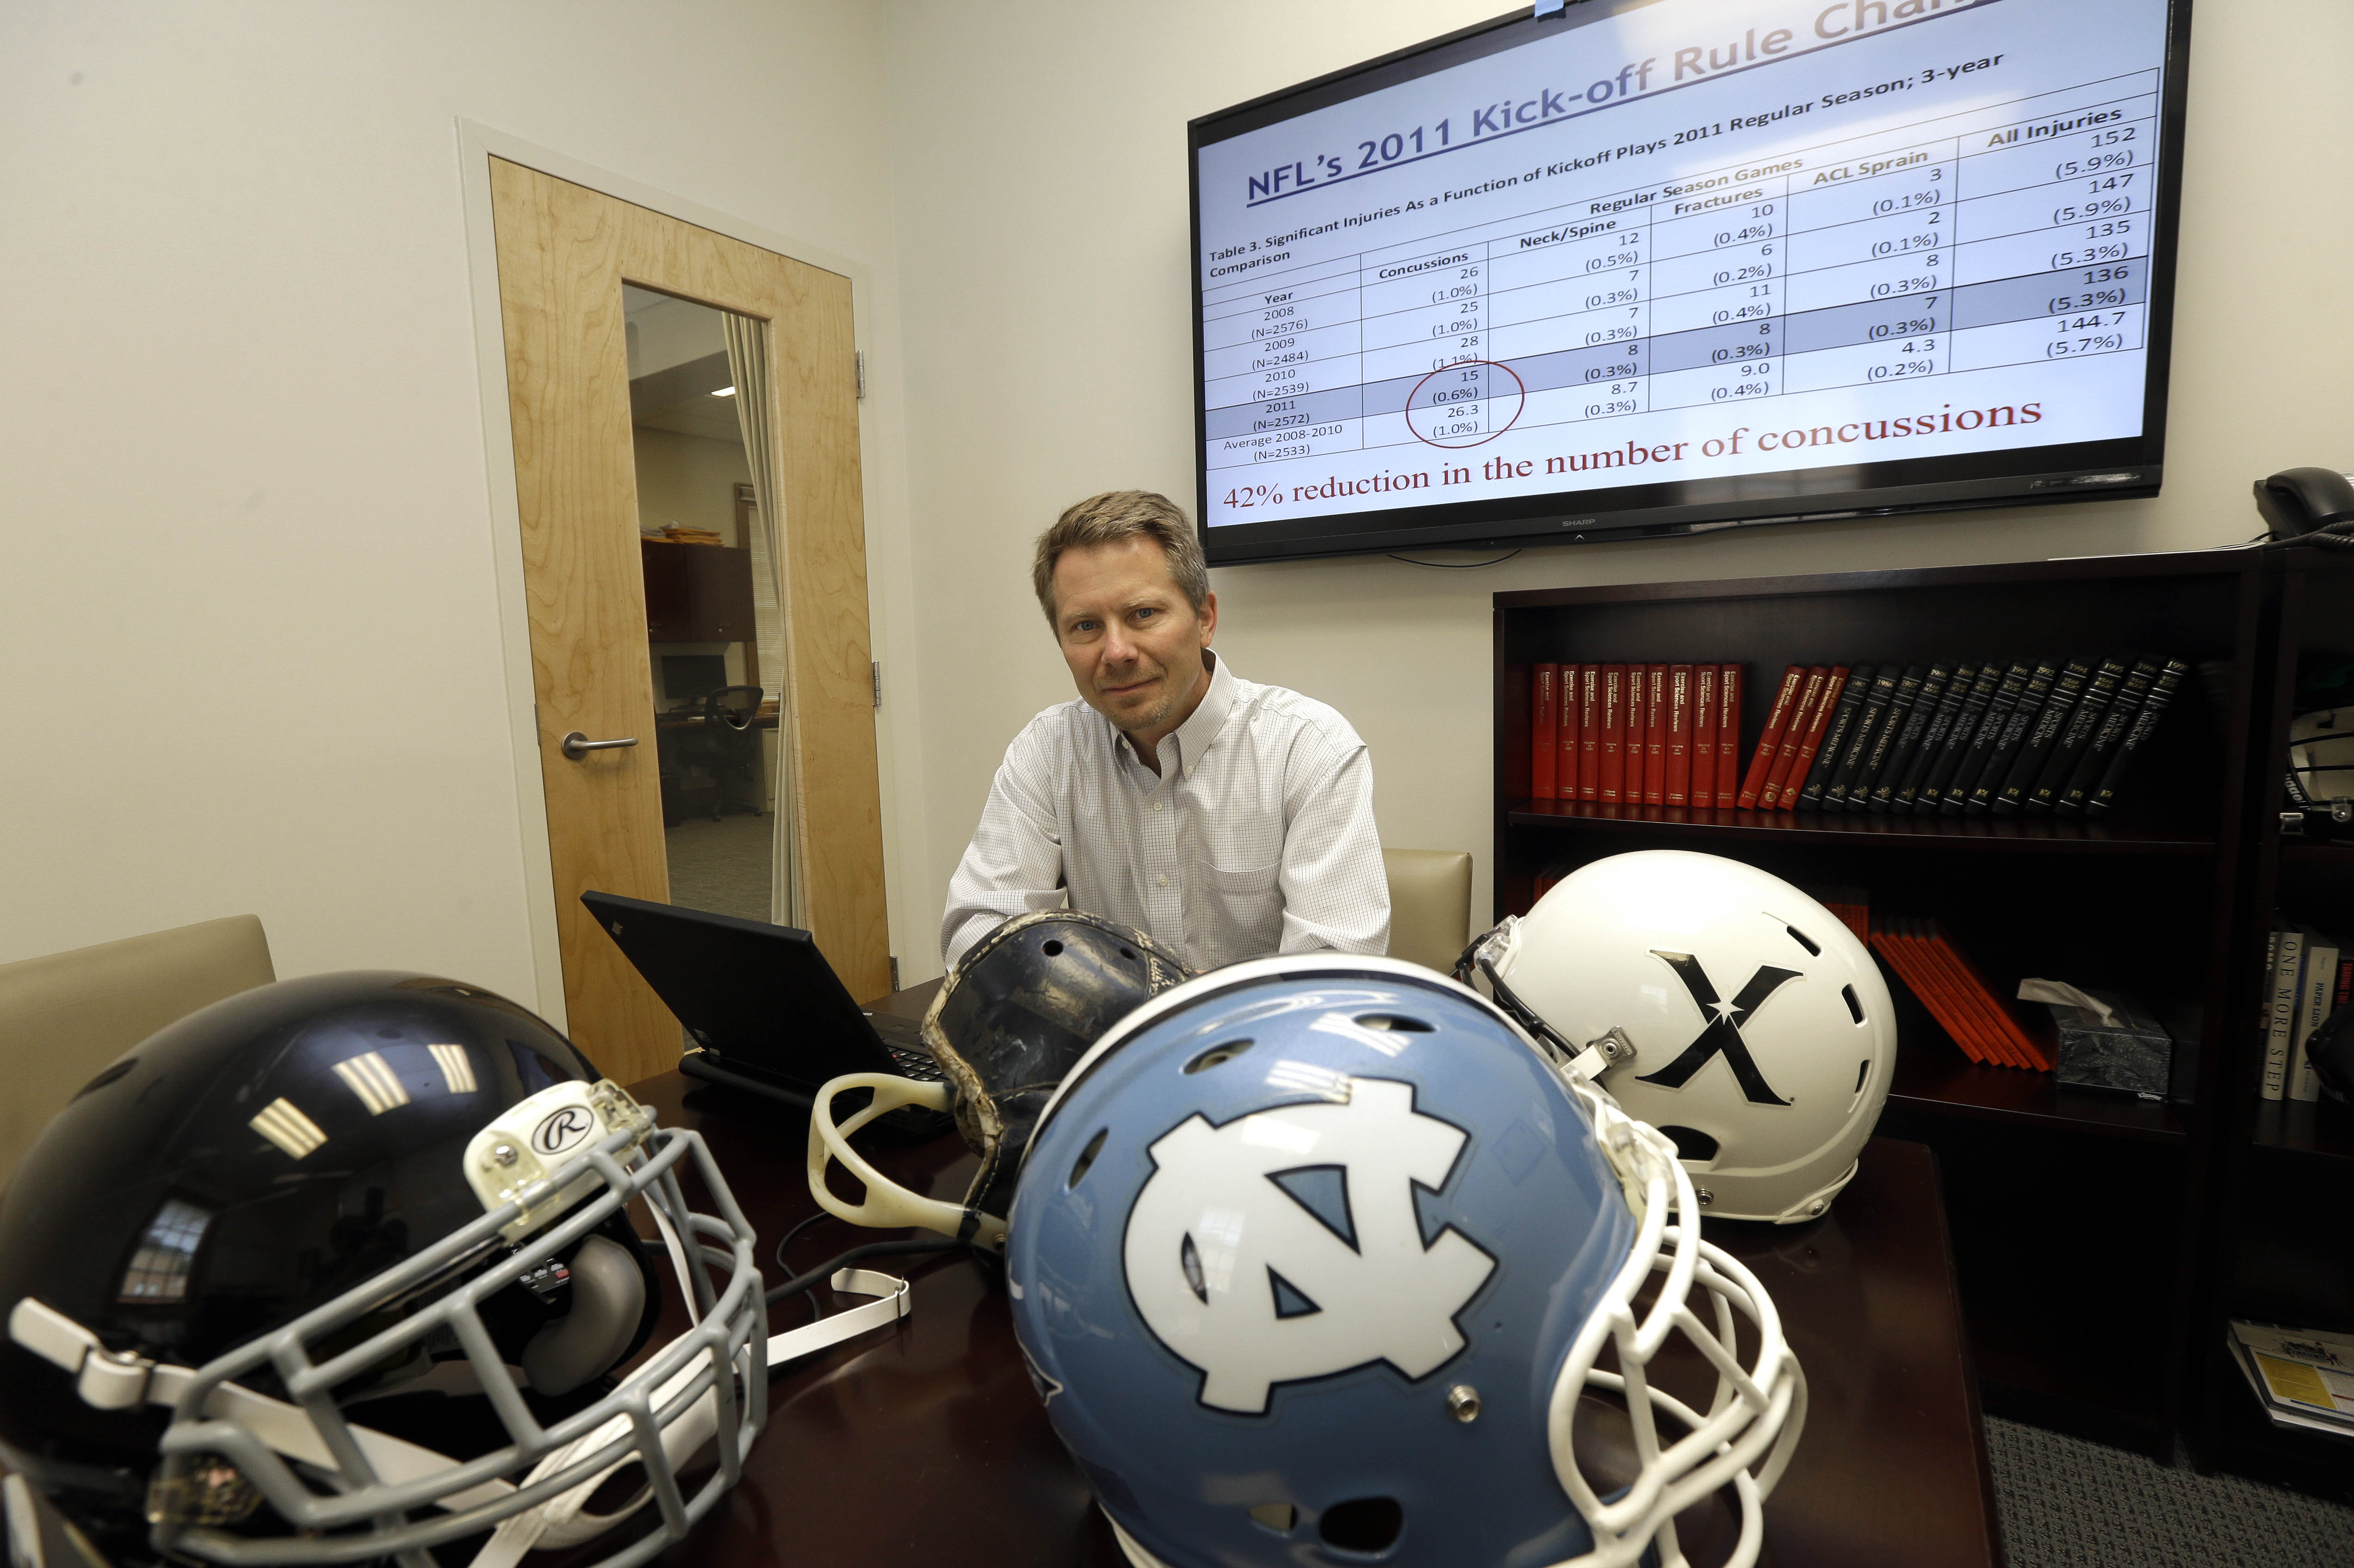 ADVANCE FOR WEEKEND EDITIONS, MAY 15-17 - In this photo taken Wednesday, May 13, 2015, Kevin Guskiewicz, professor and former chair of the Department of Exercise and Sports Medicine at the College of Arts and Sciences, is surrounded by football helmets wh